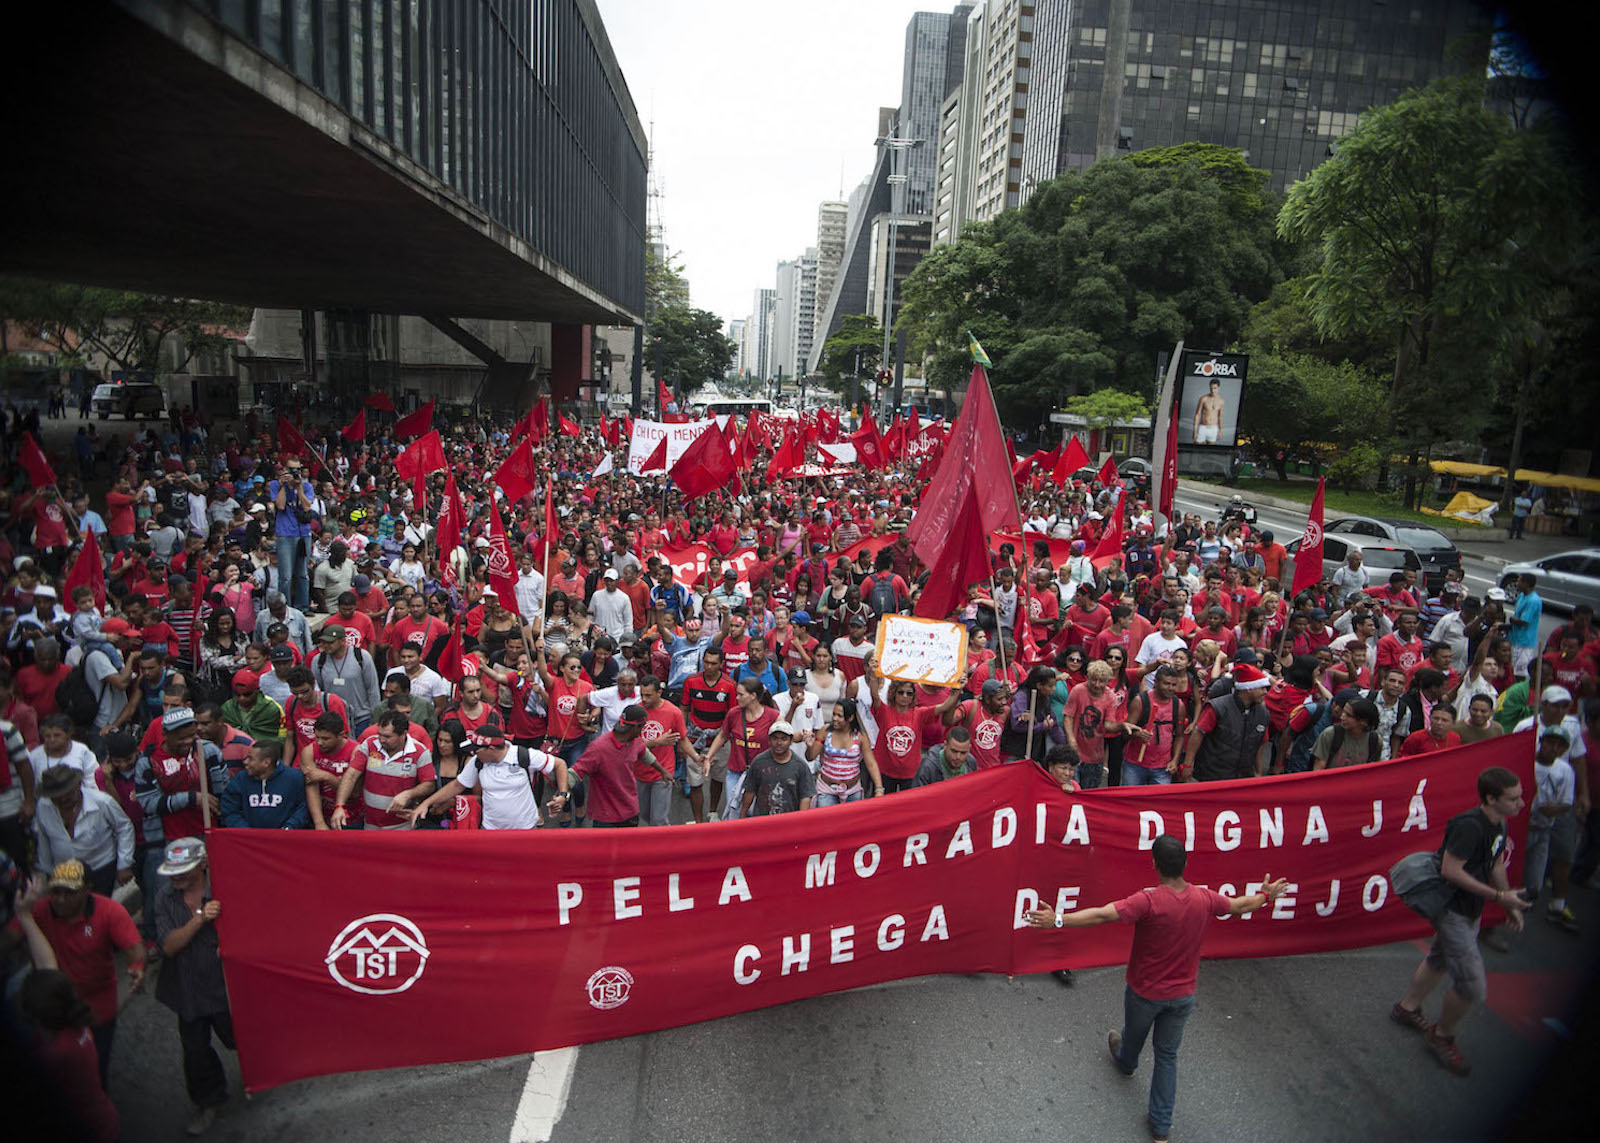 A Future for Social Movements in Brazil